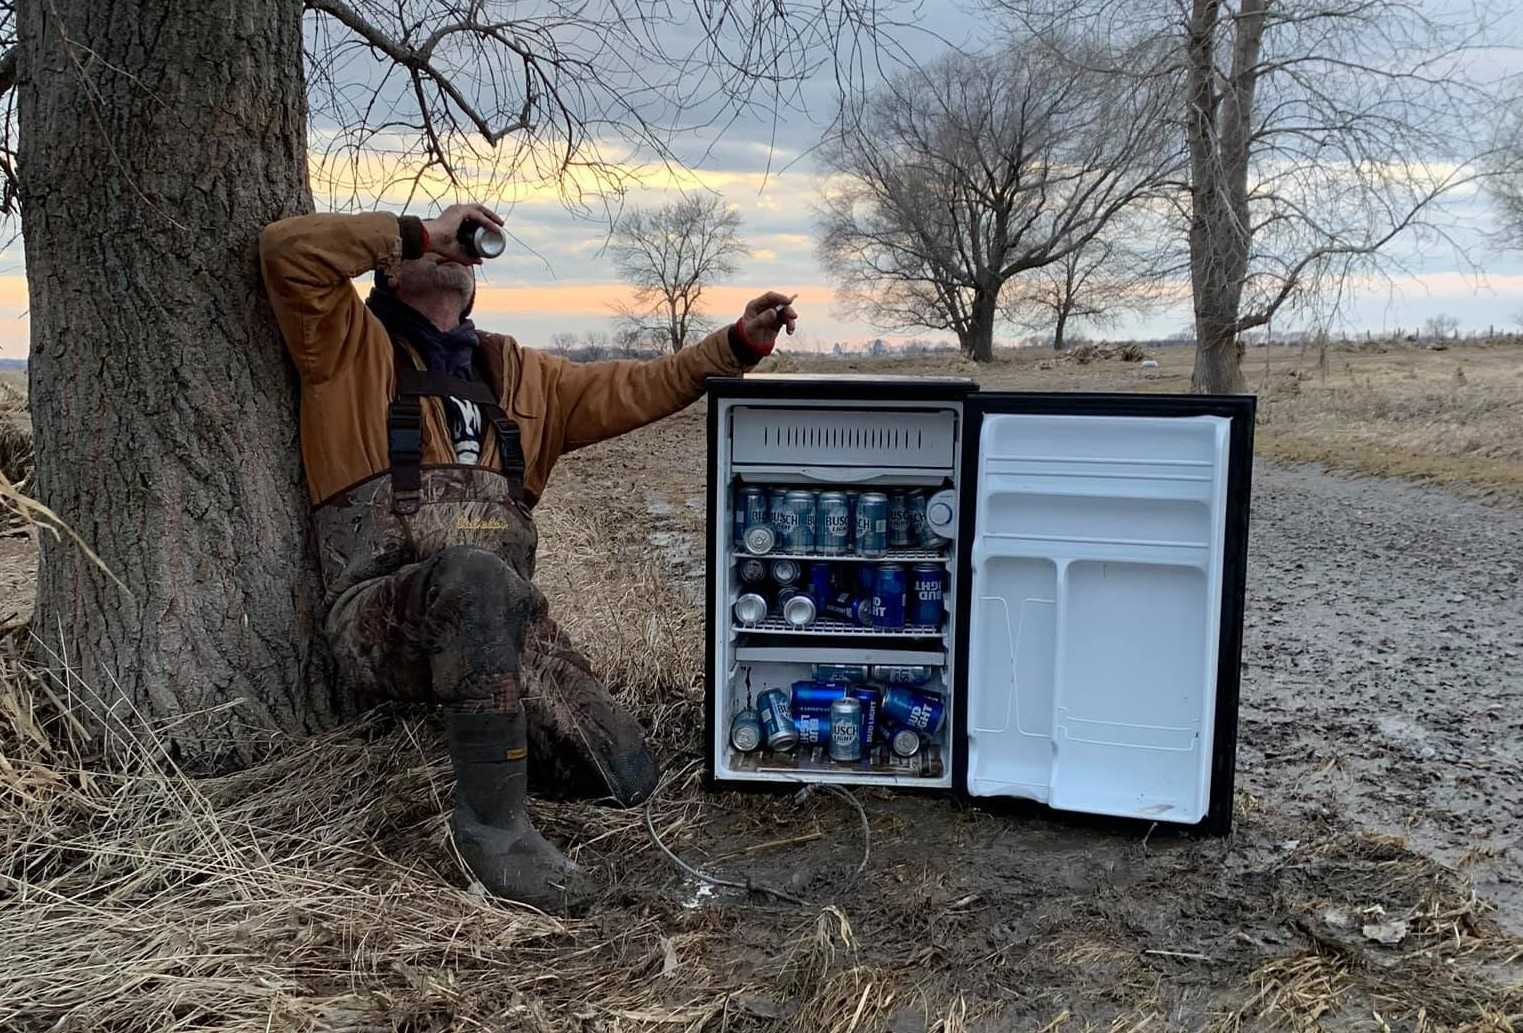 washingtonpost.com - Meagan Flynn - It's a 'magic fridge!': Men find ice-cold beers in a field after long hours cleaning up Nebraska flood wreckage